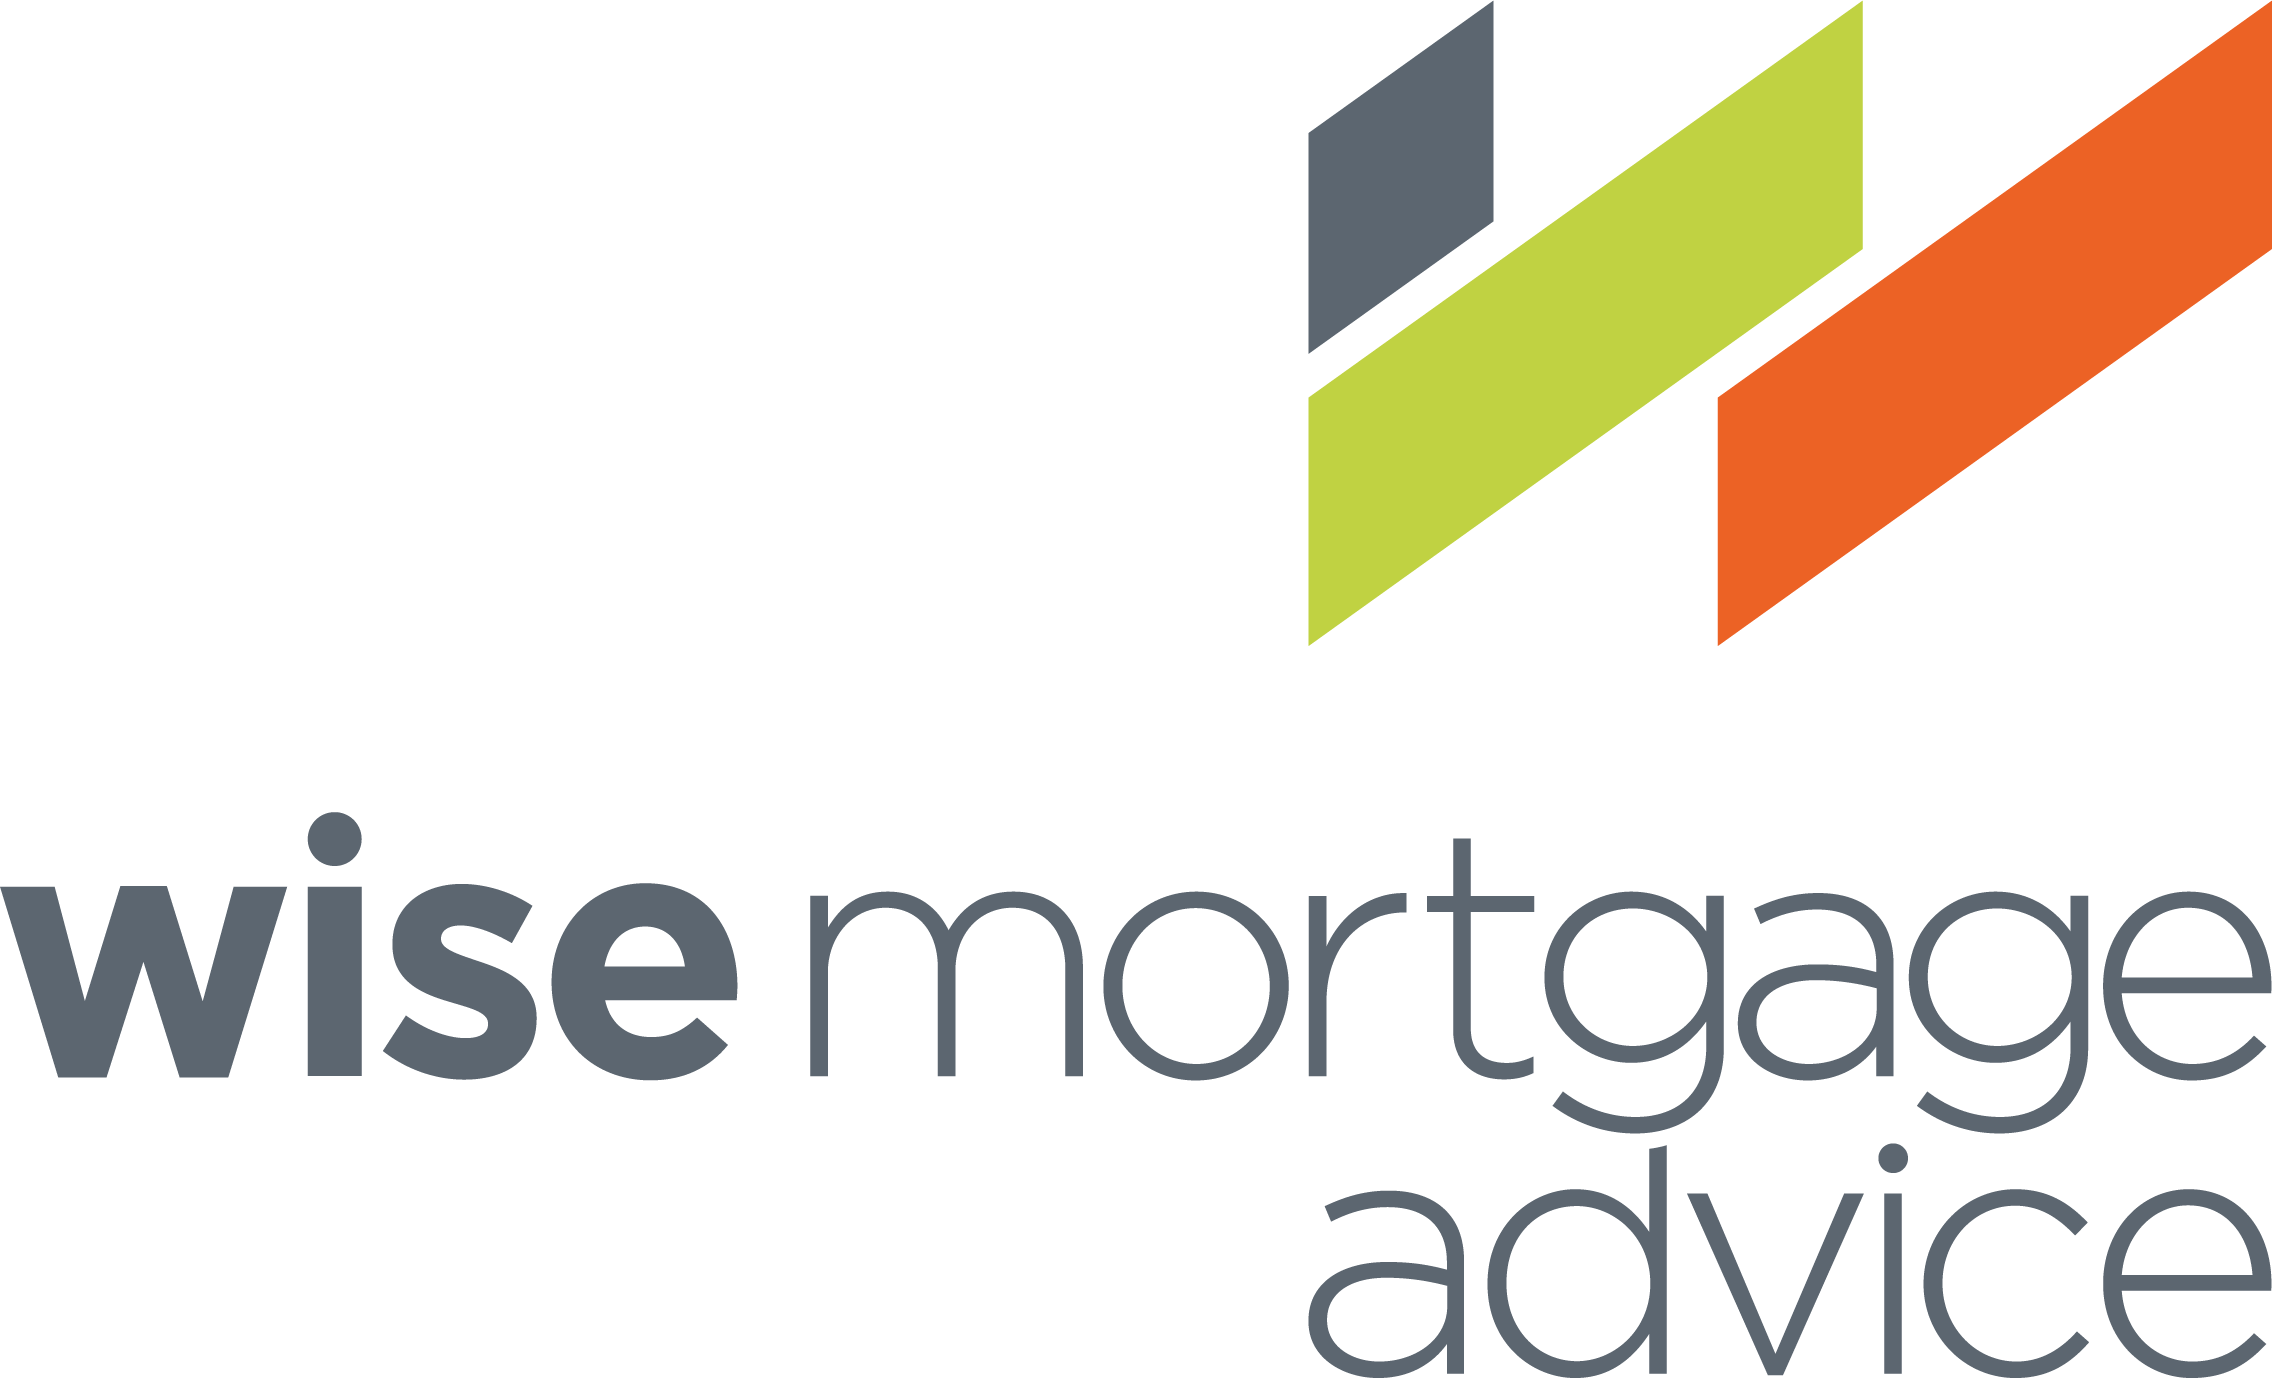 Wise Mortgage Advice